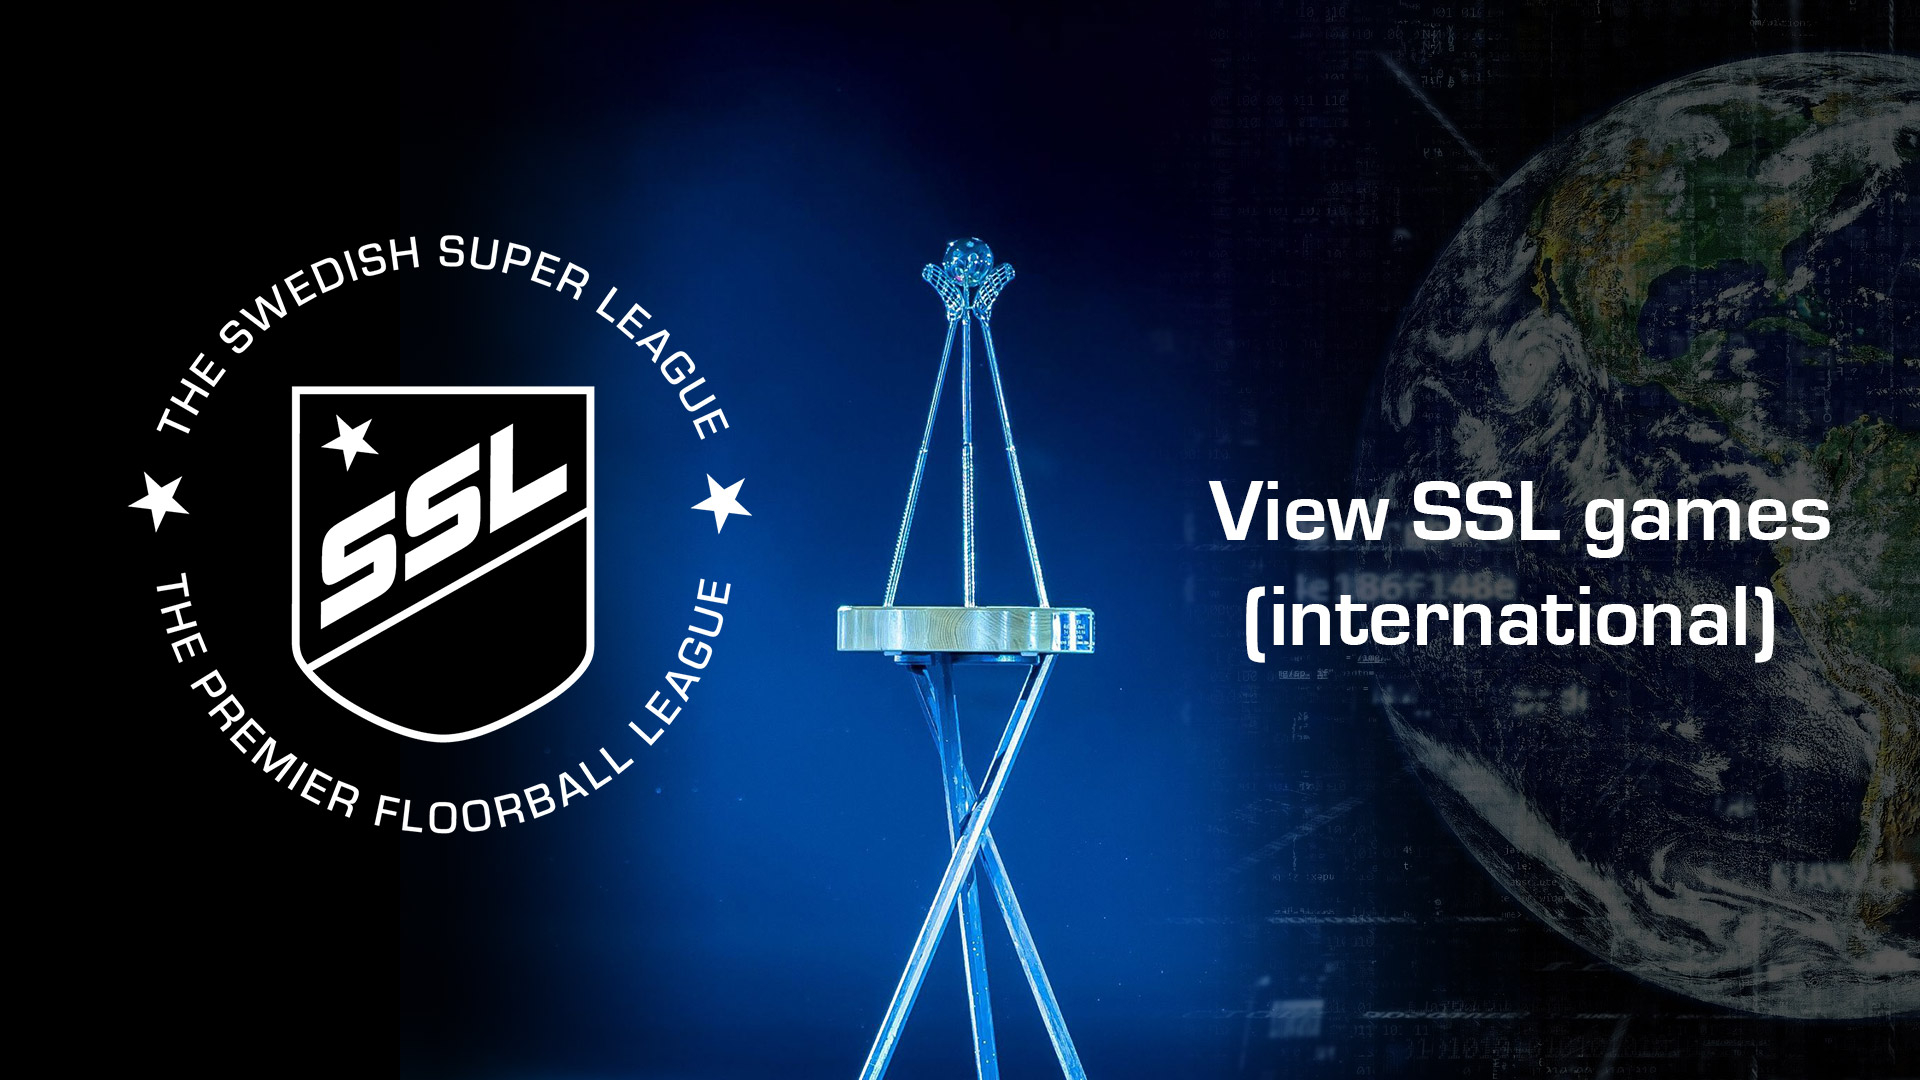 View SSL games on SSL.se